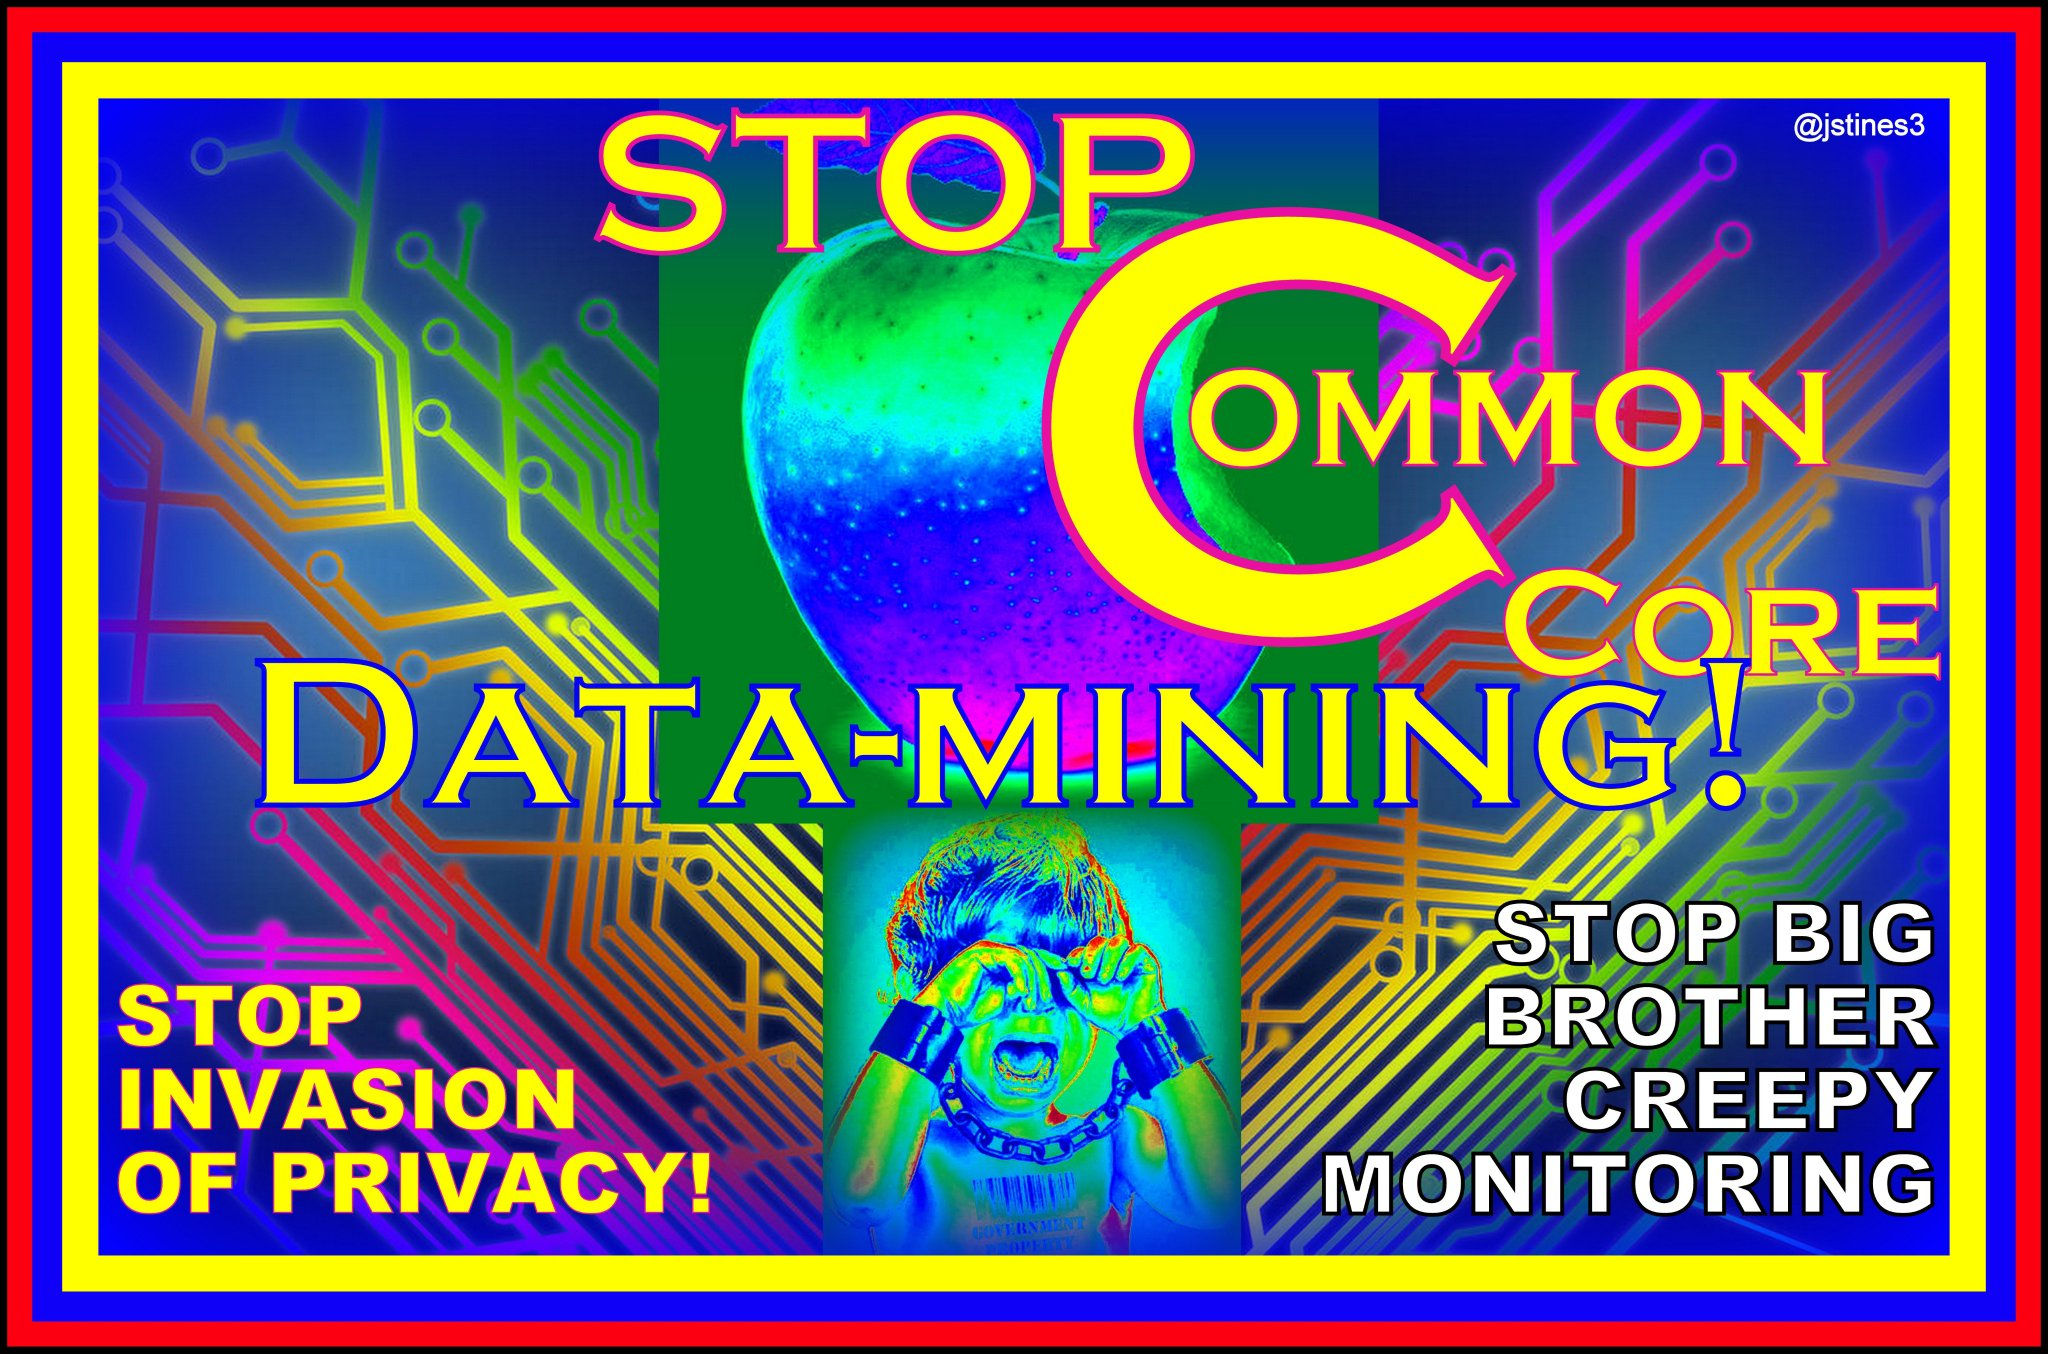 .@POTUS, Common Core data-mining of kids is sci-fi CREEPY!    #KeepYourPromise  #StopCommonCore  #PJNET  #EndFedEd https://t.co/yY4HwLalhQ